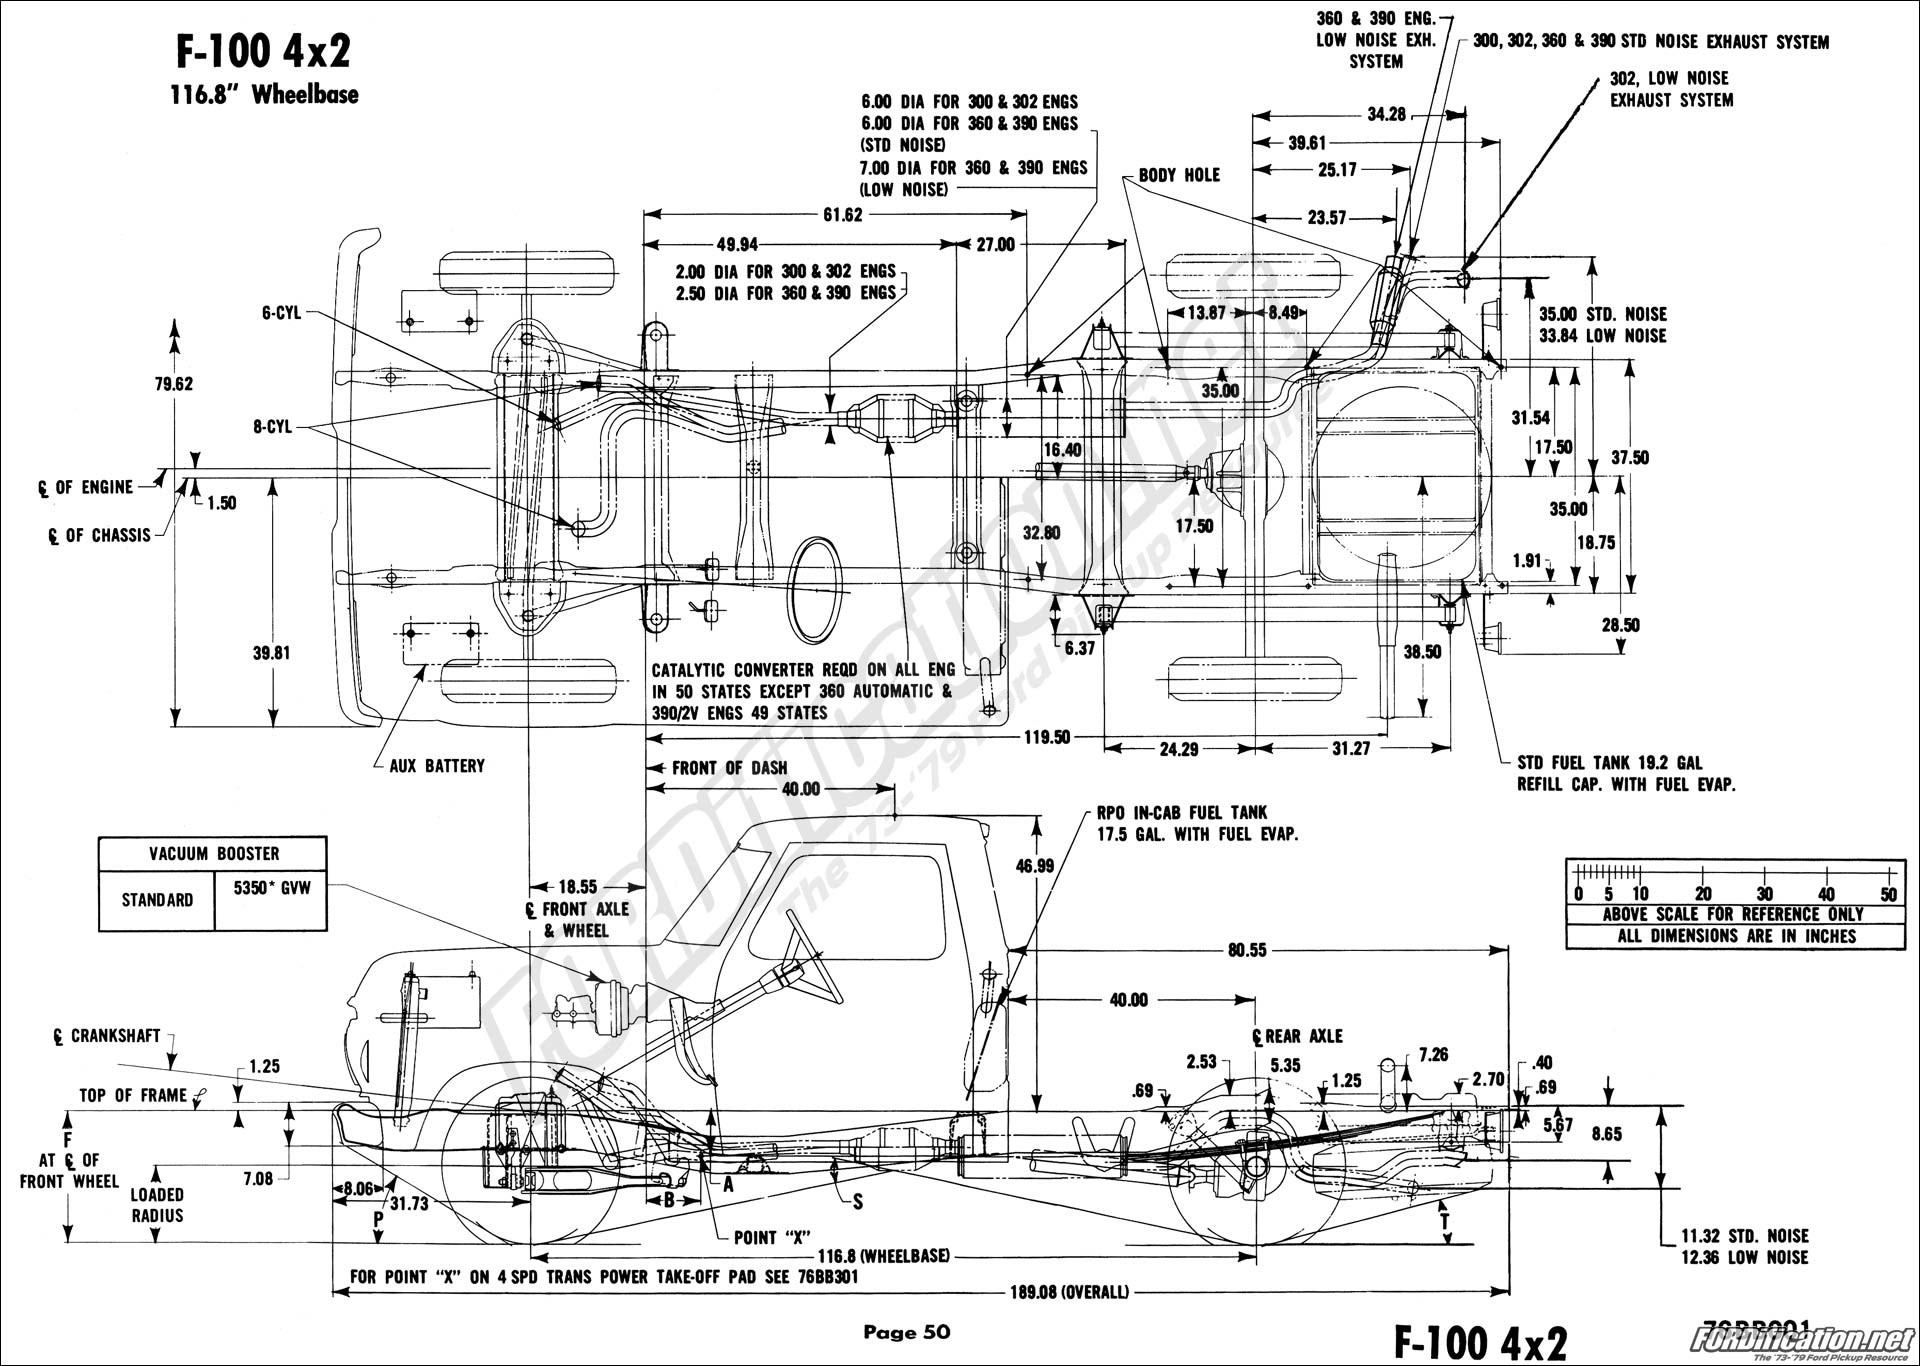 Ford External Voltage Regulator Wiring Diagram besides 86 Ford Ranger Inertia Switch Location moreover Schematics i further Ford F150 Frame Dimensions further Details About Ford 1969 F100 F350 Truck Wiring Diagram Manual 69. on 1965 ford transit engine